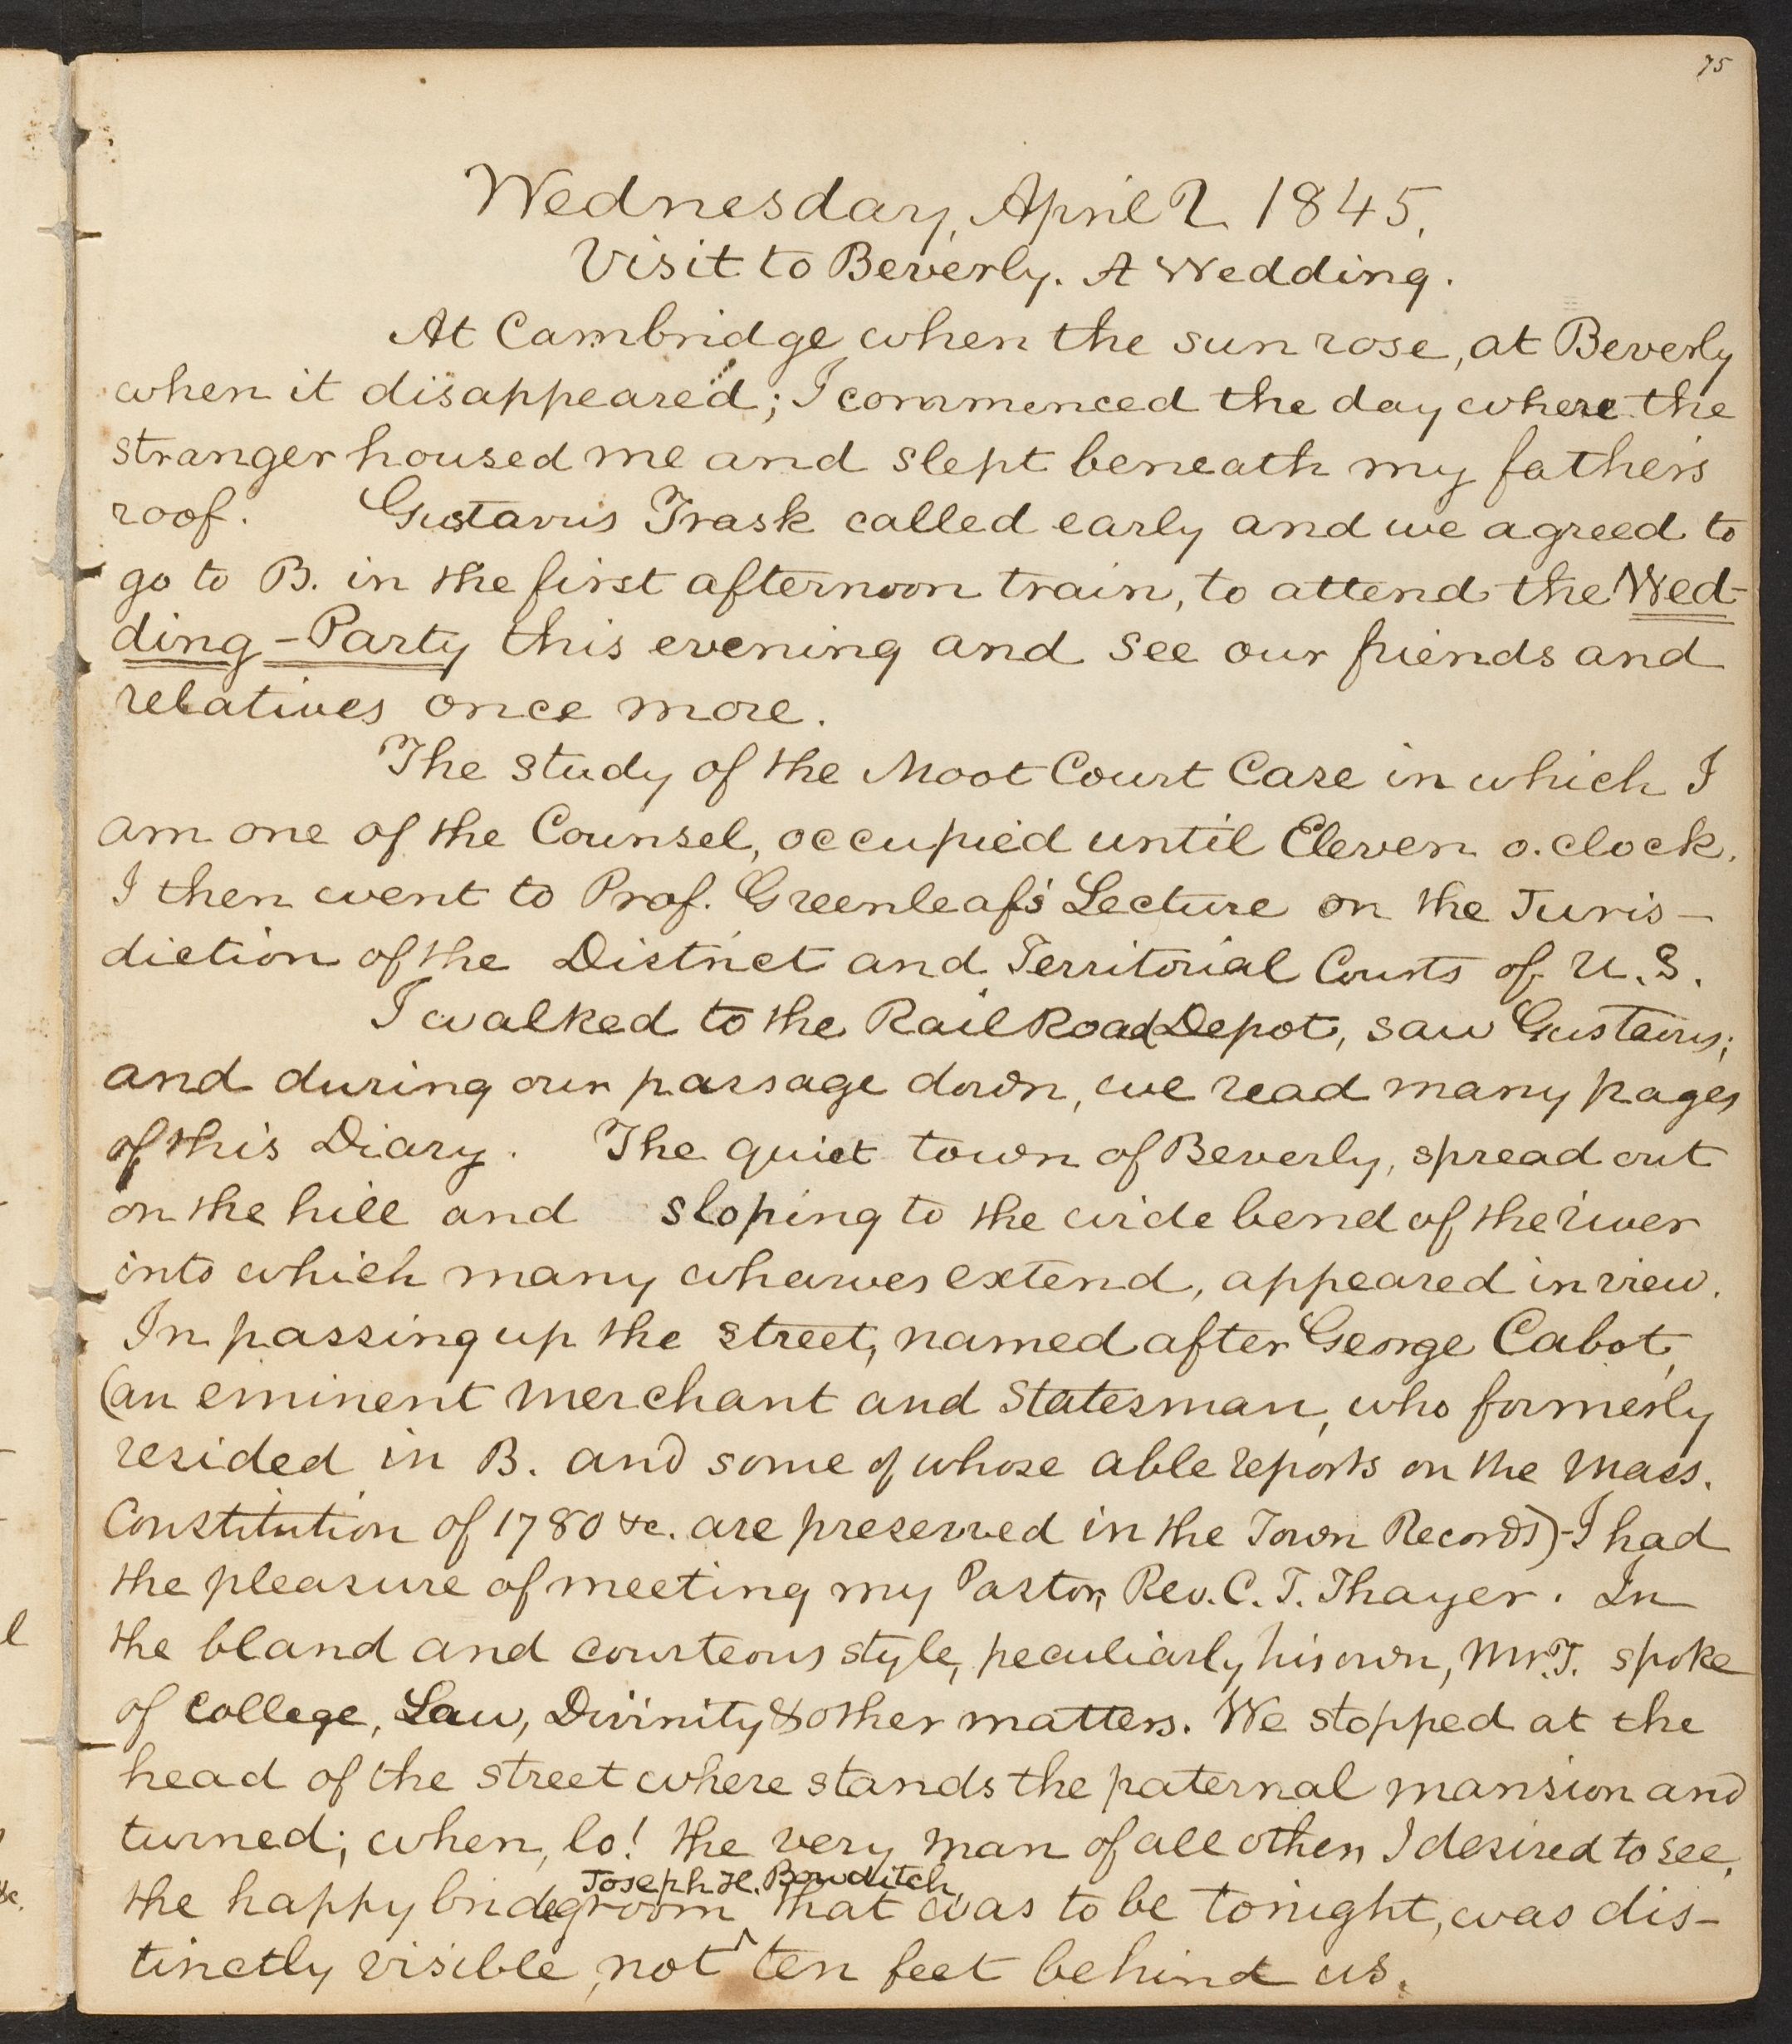 Image from James W. Boyden diary, HLS student, 1845-1846